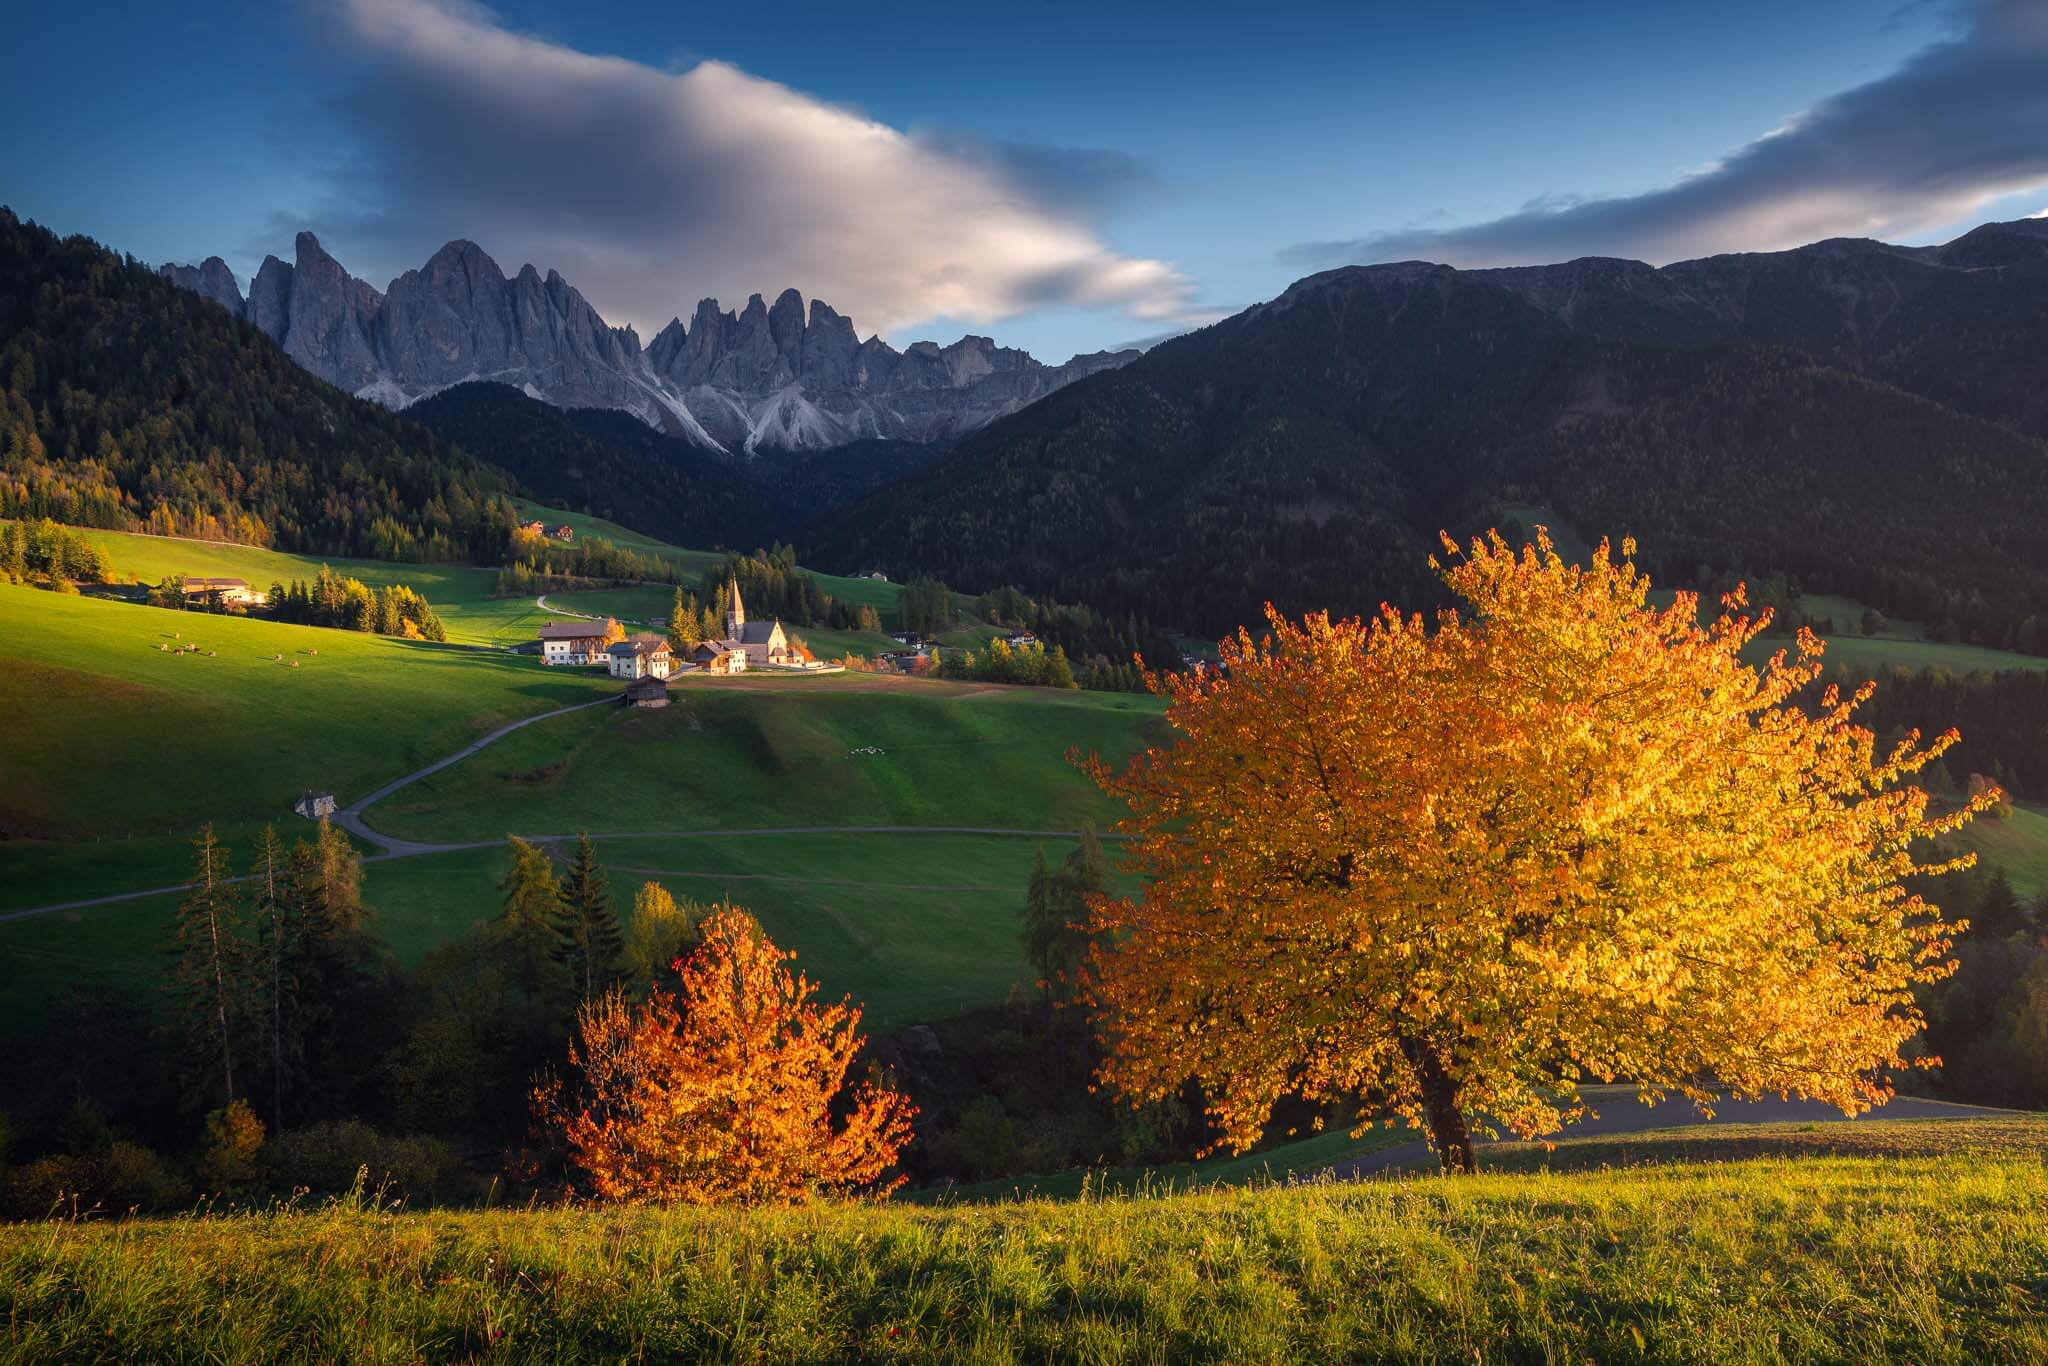 Val di Funes during the autumn photo tour in the Dolomites